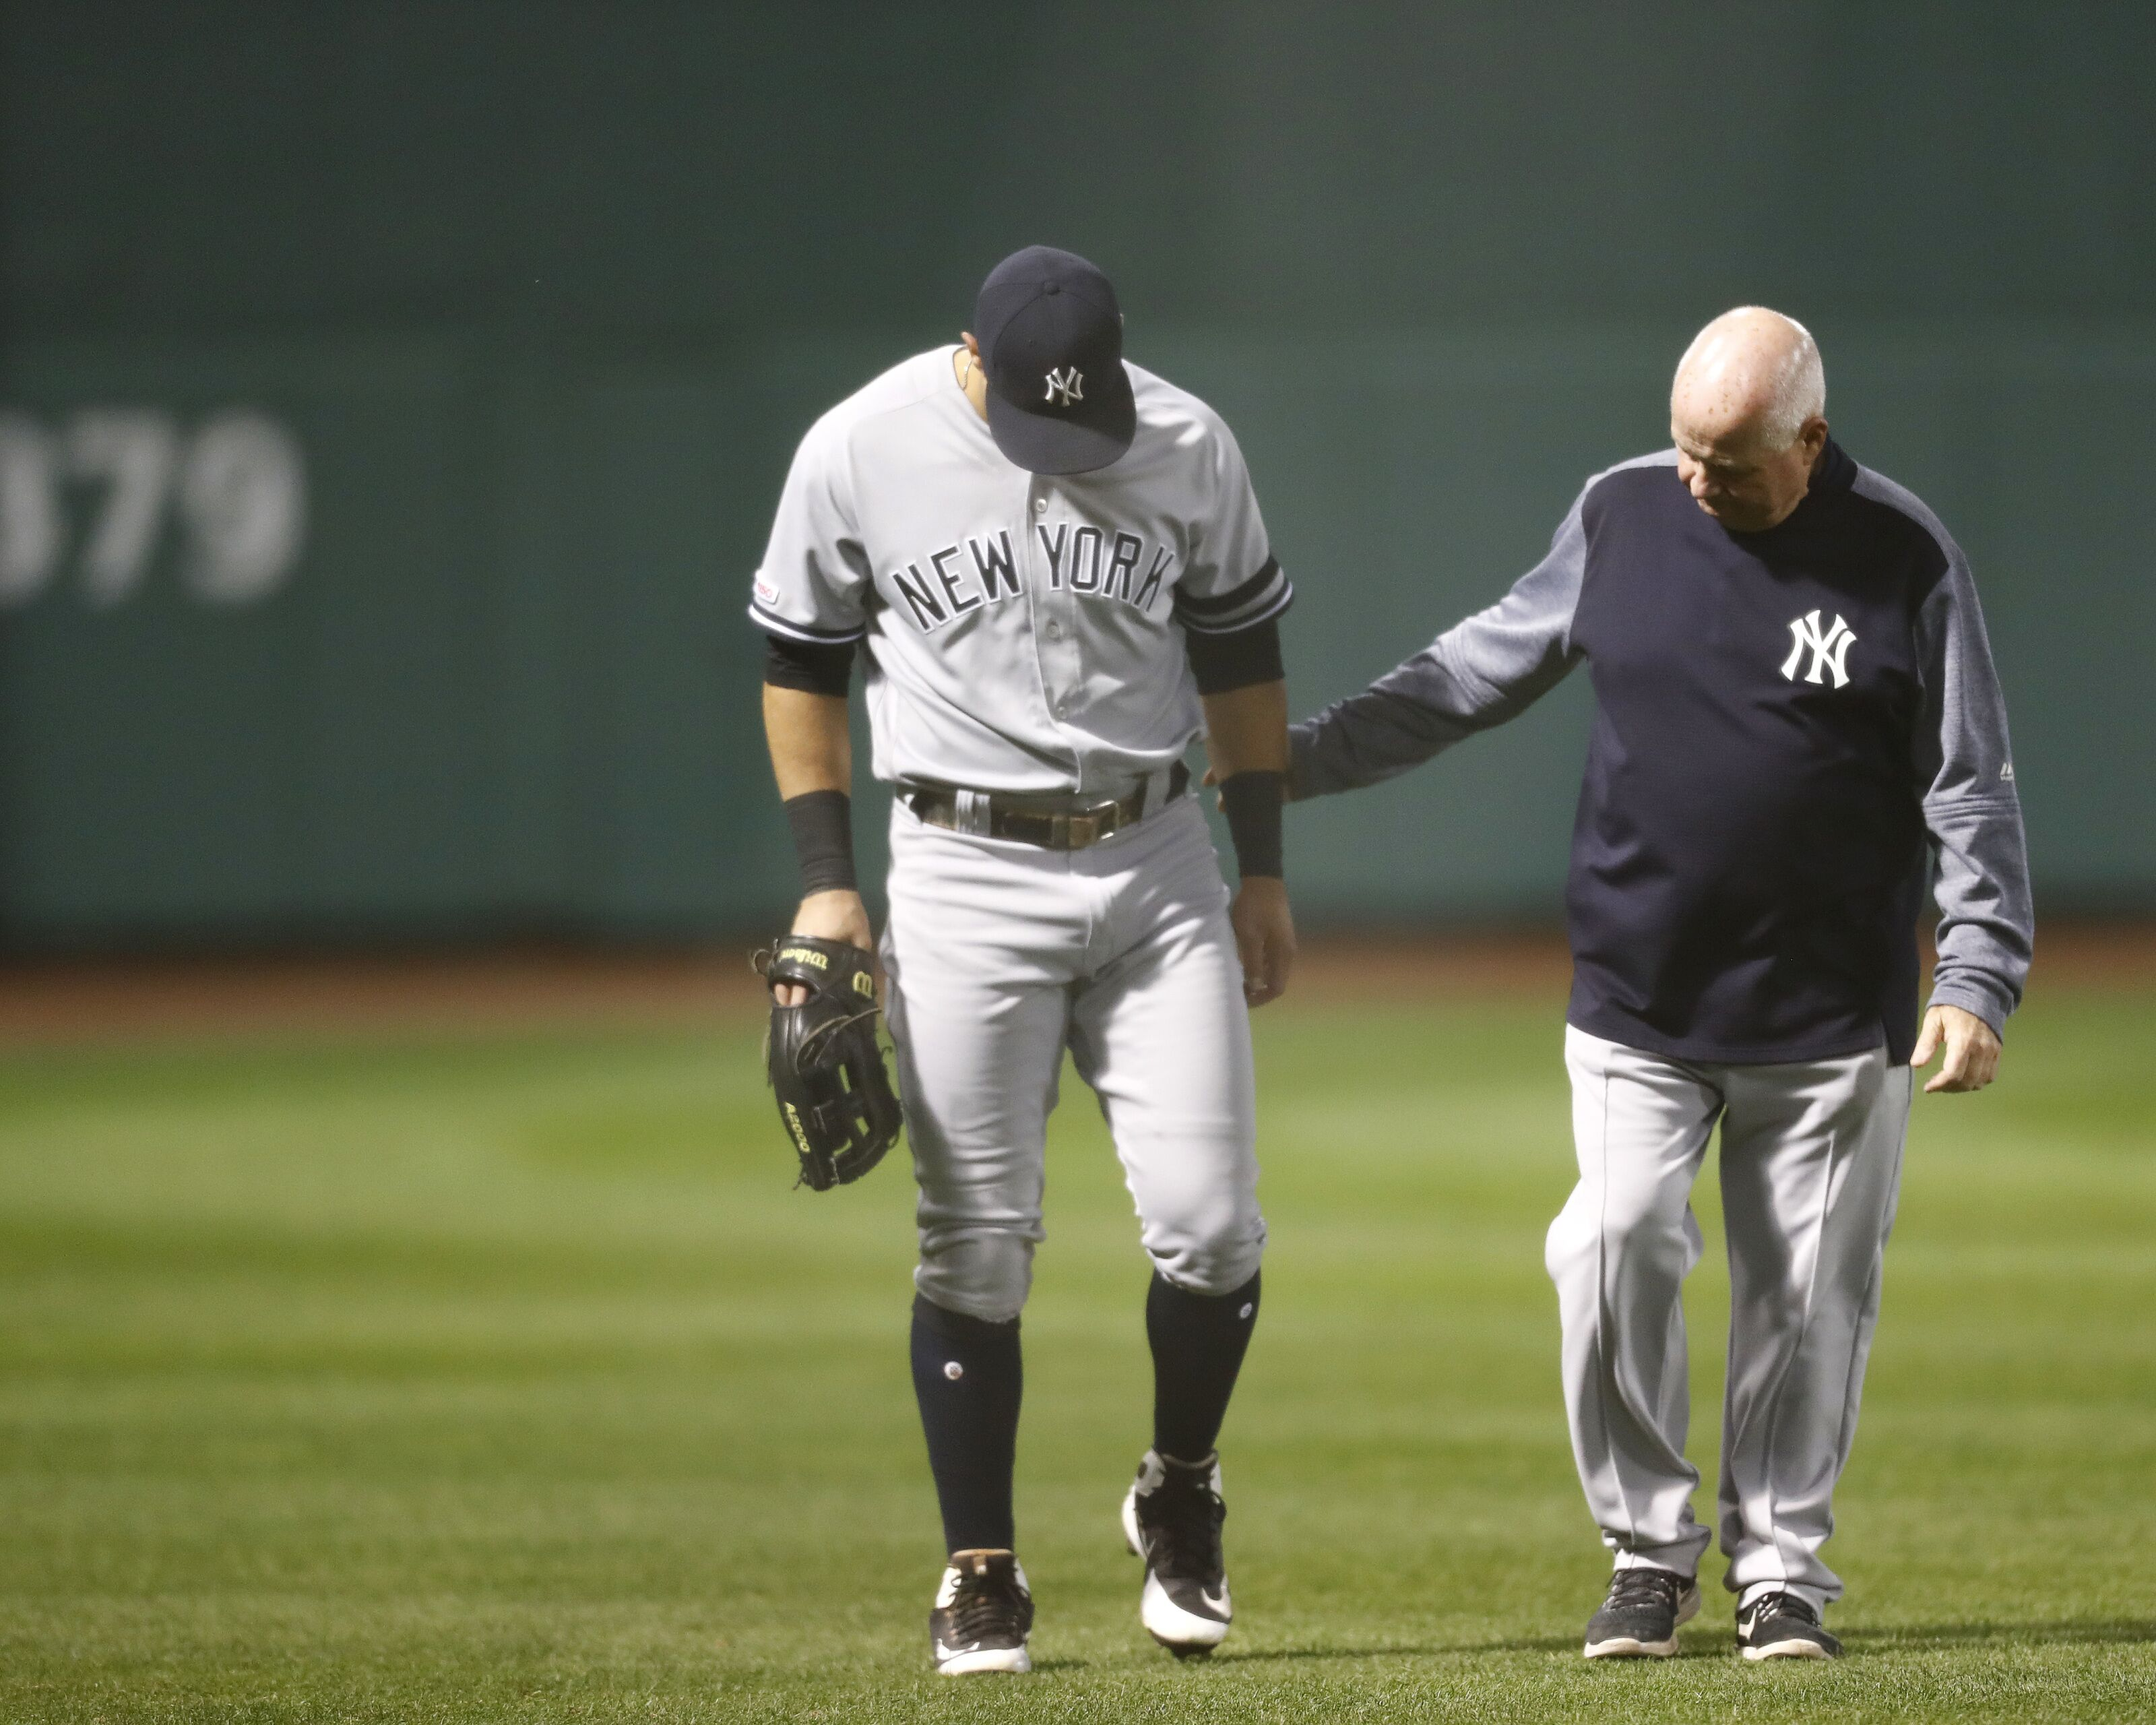 Yankees: Mike Tauchman likely out for the rest of the season with a Grade 2 calf strain